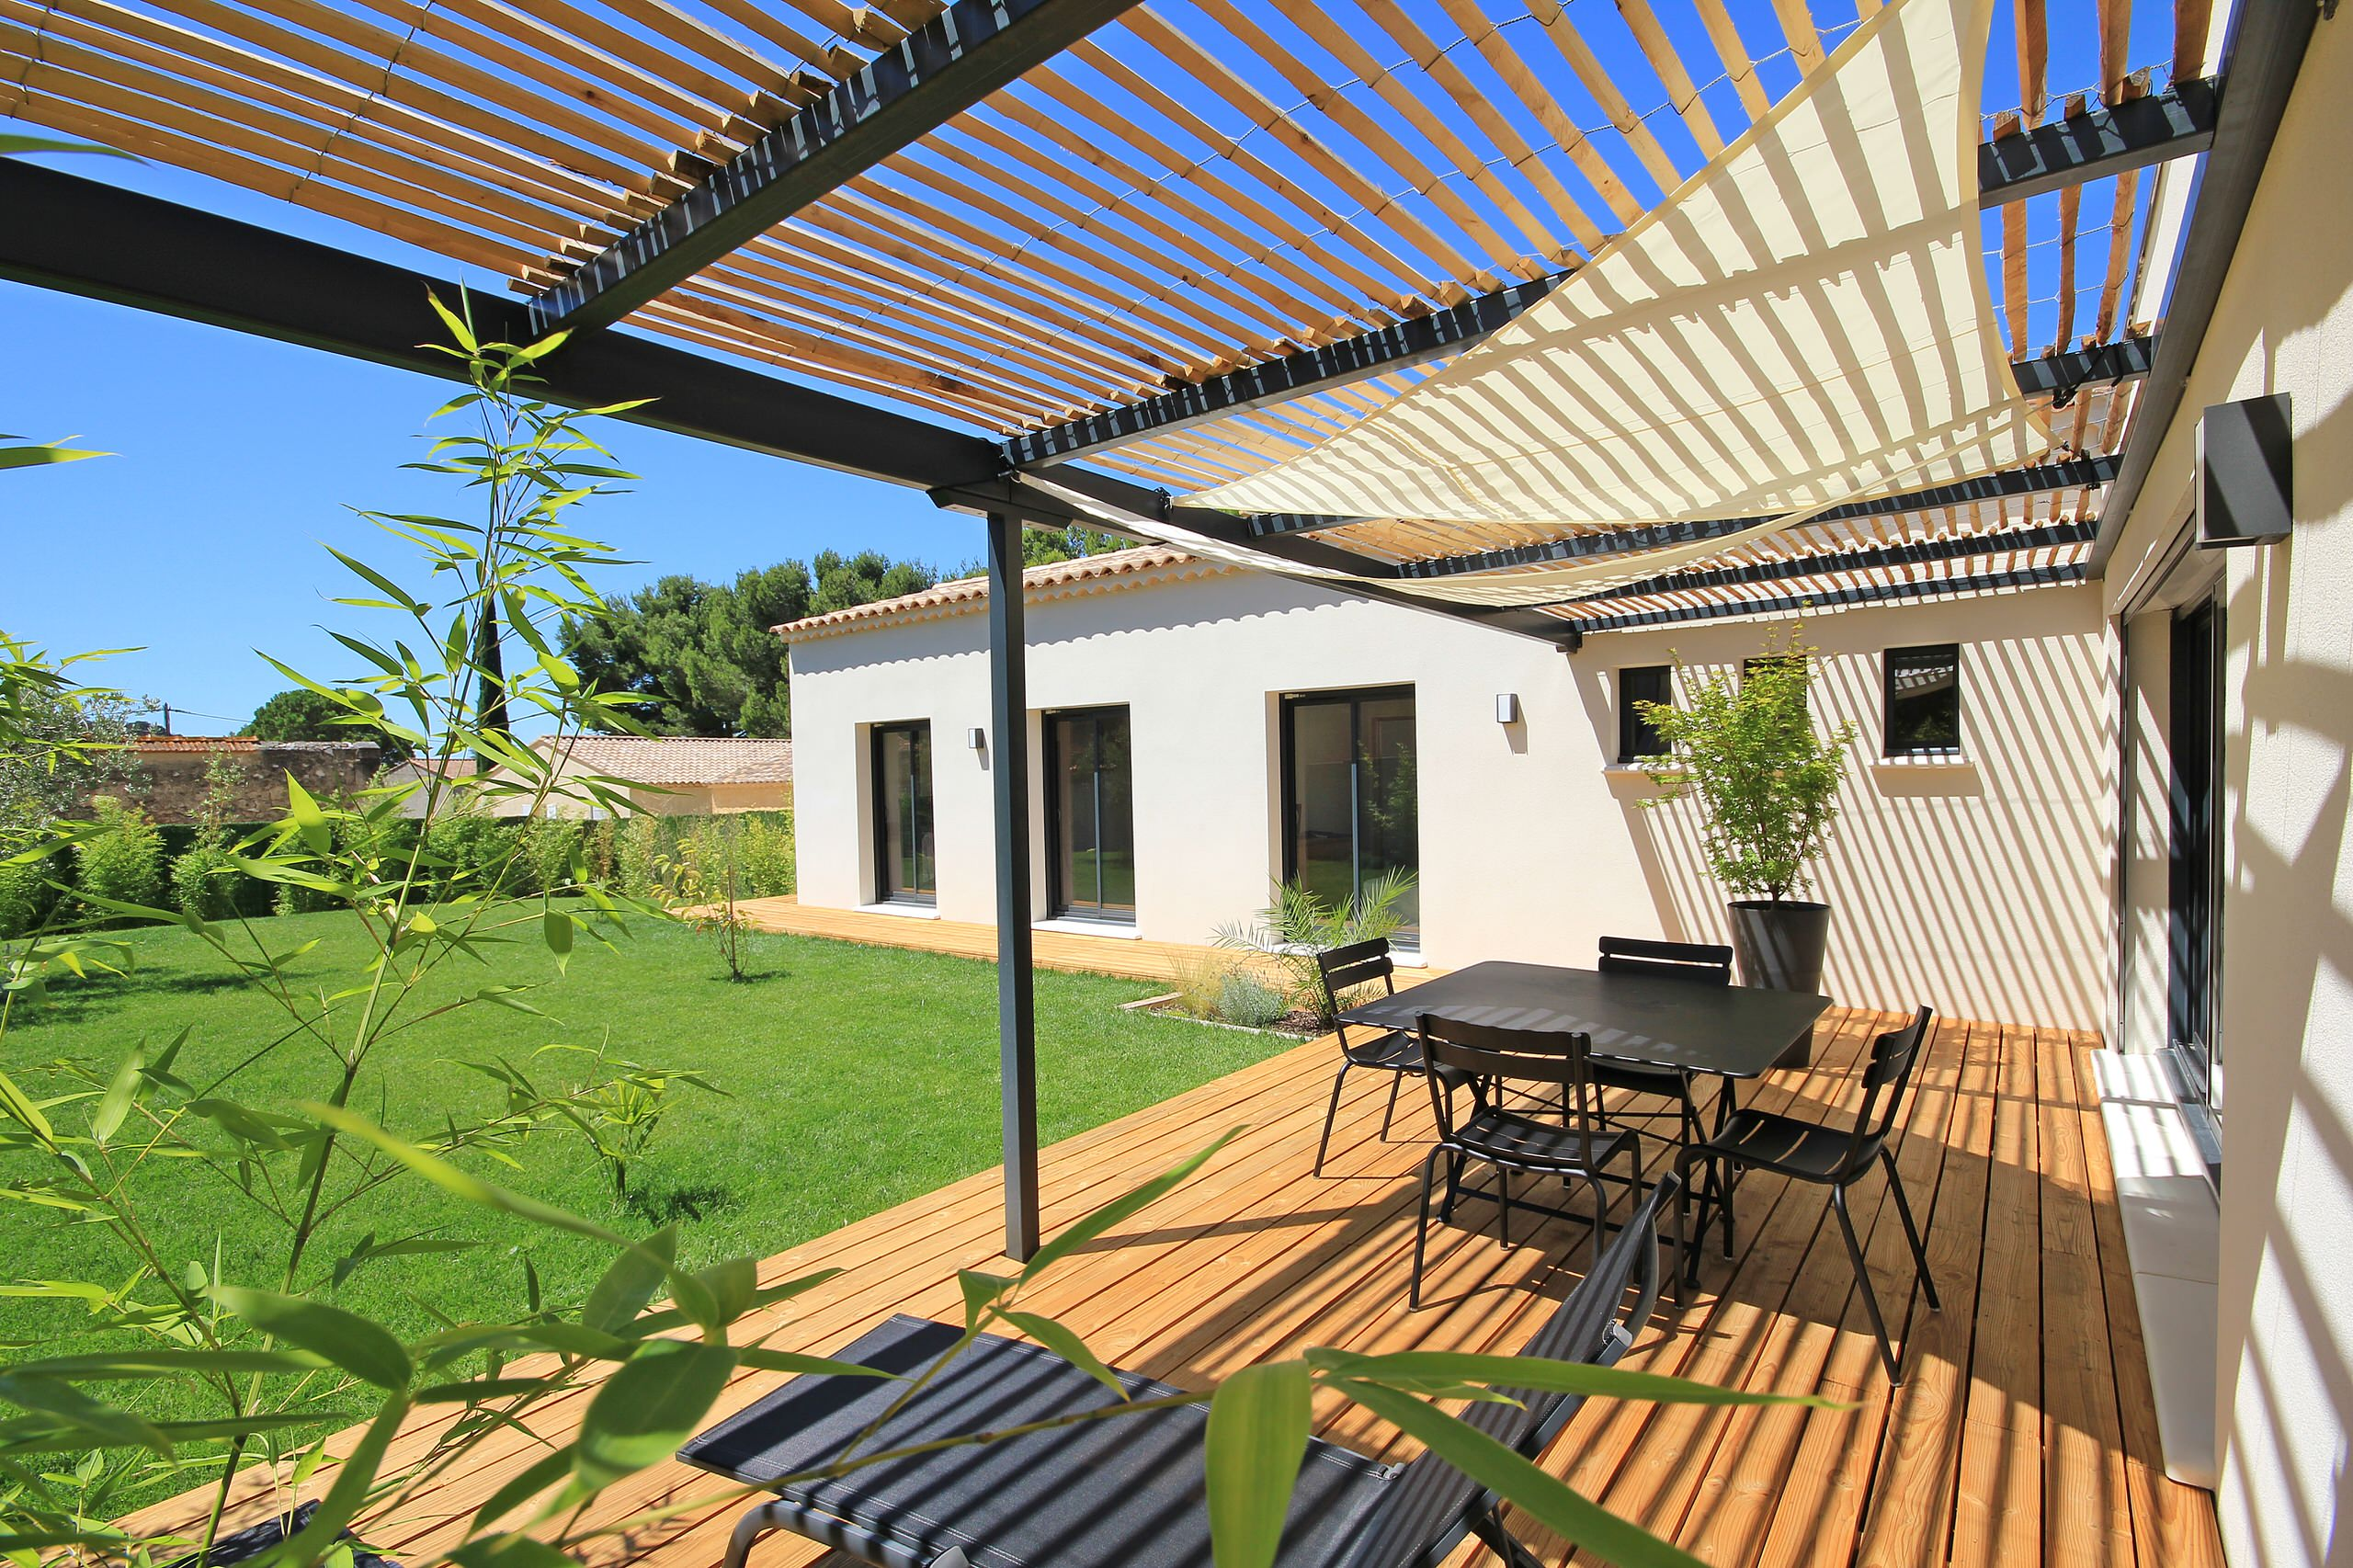 16 Stunning Modern Deck Designs That Will Extend Your Home on Patio With Deck Ideas id=16056